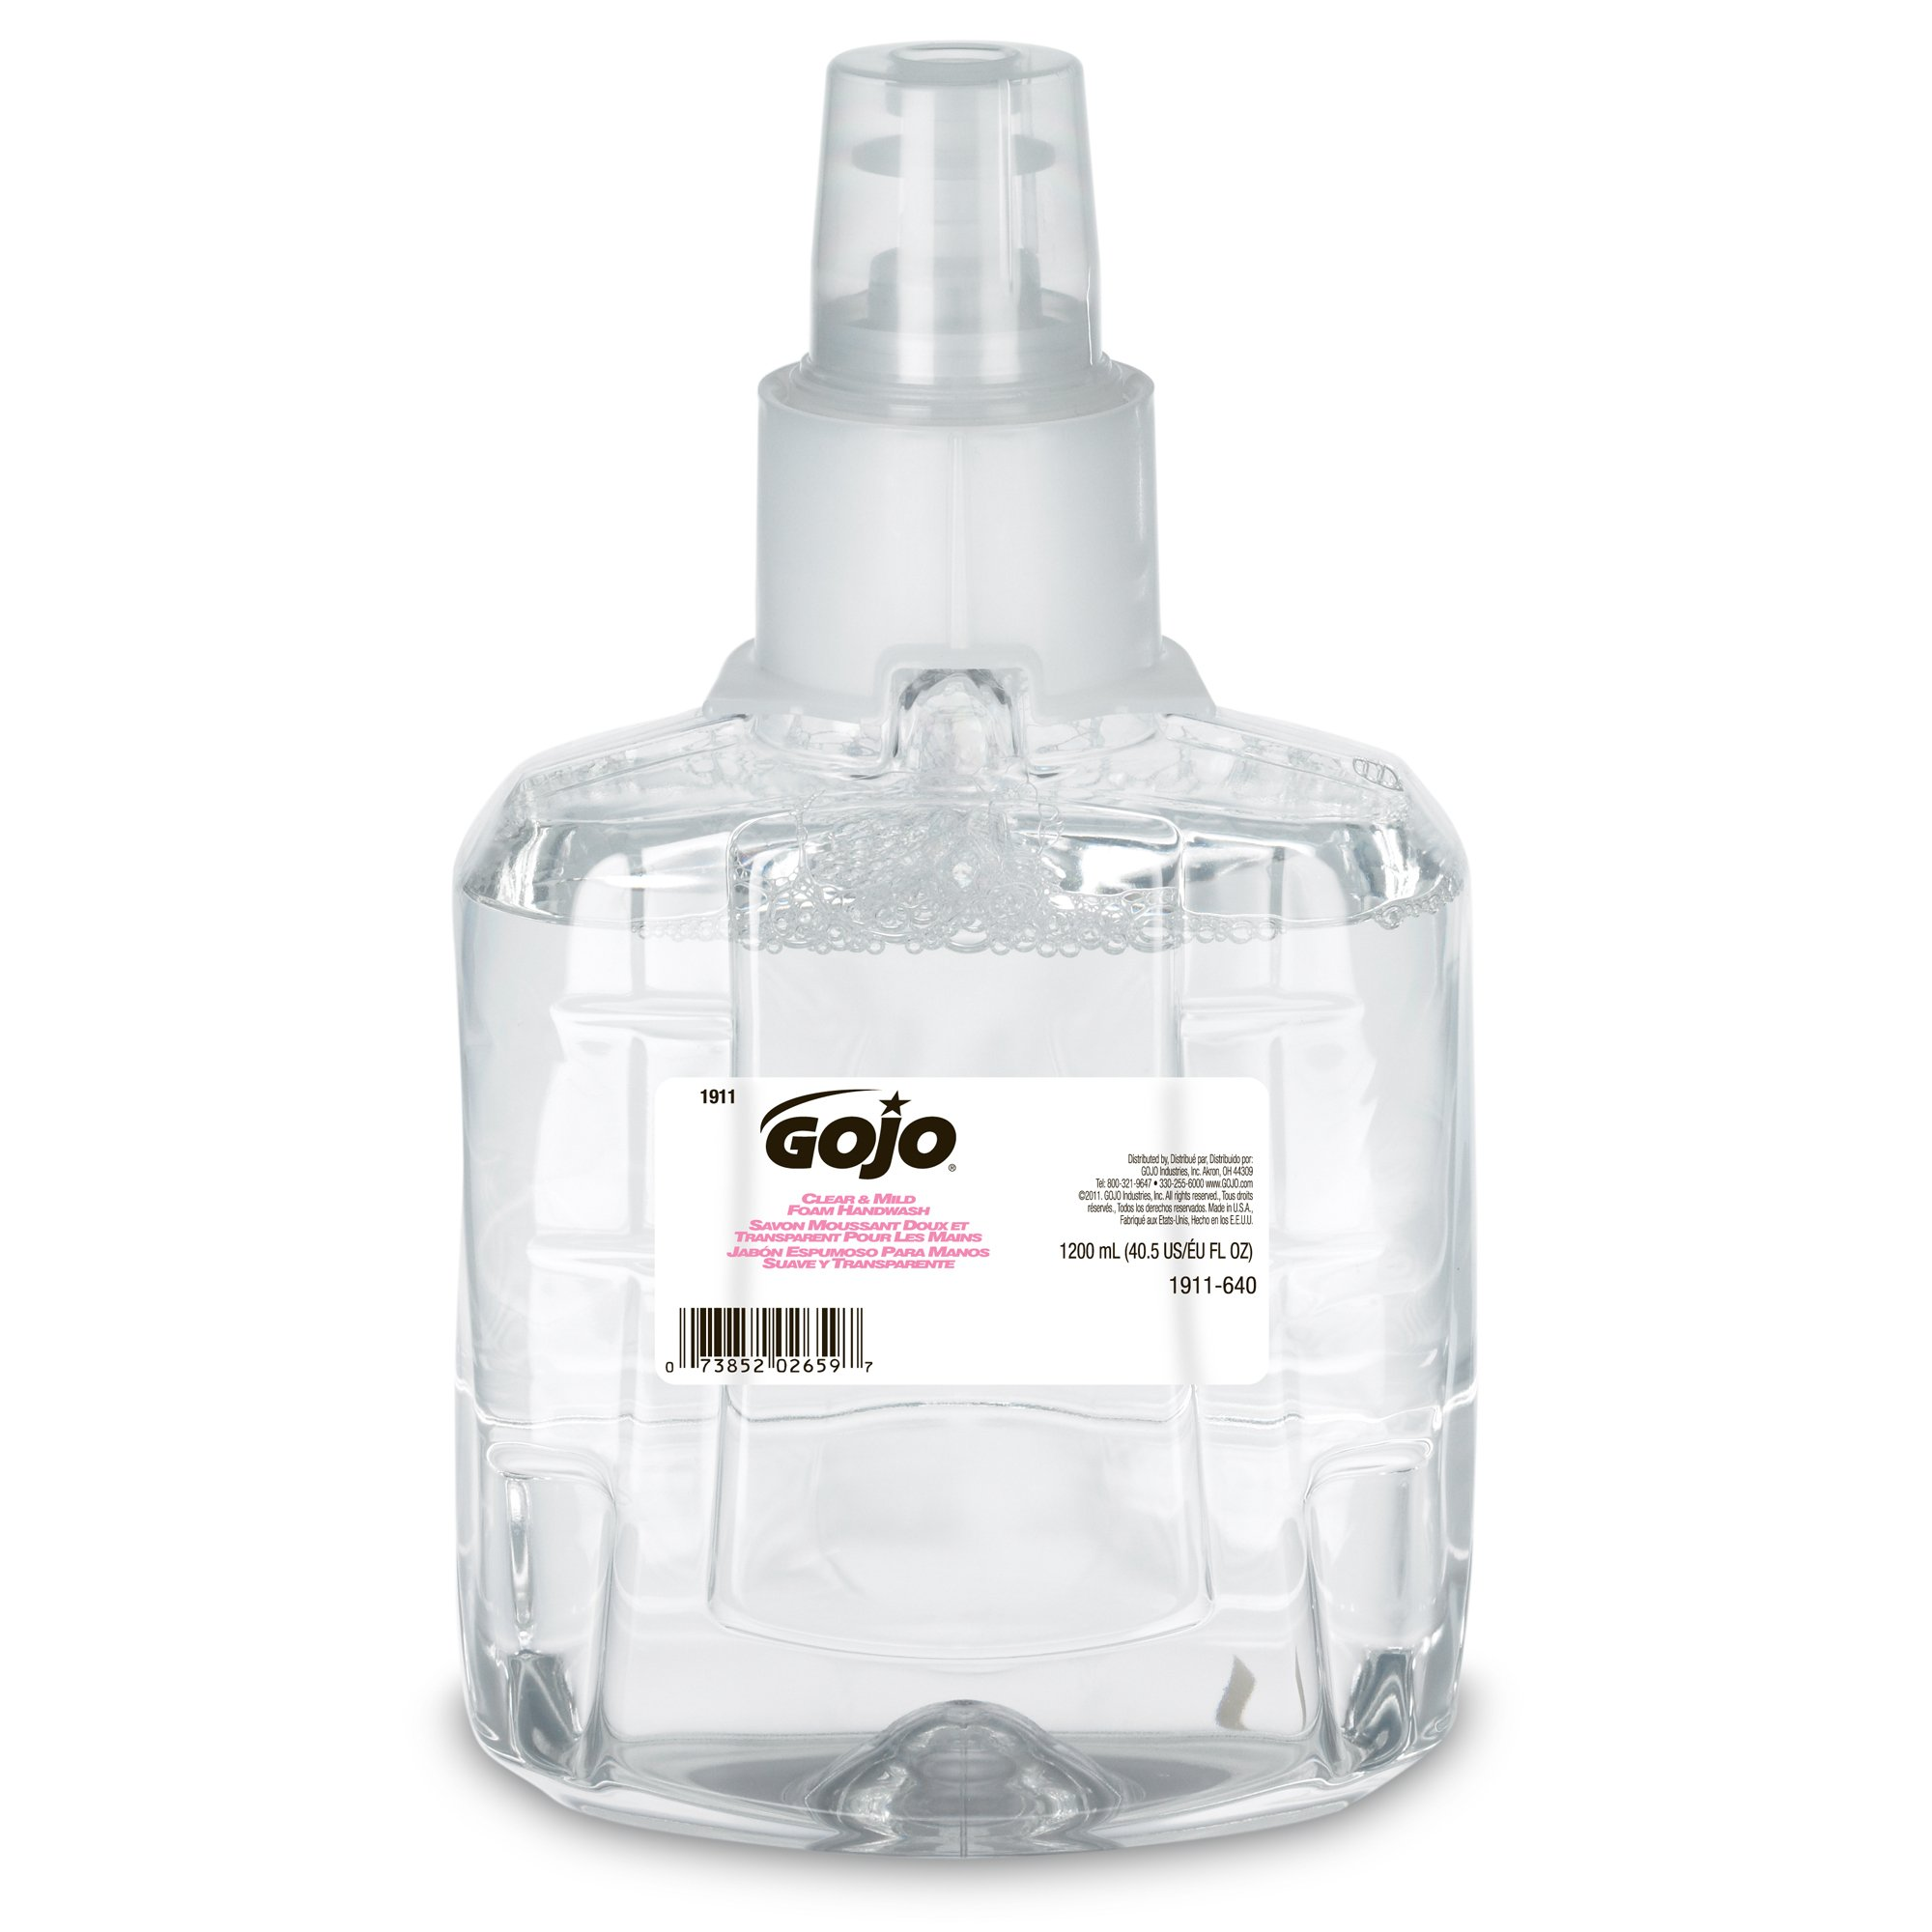 GOJO Foam Soap Handwash - Clear and Mild Foam Handwash, 1200mL Refill for GOJO LTX-12 Dispenser (Pack of 2) - 1911-02